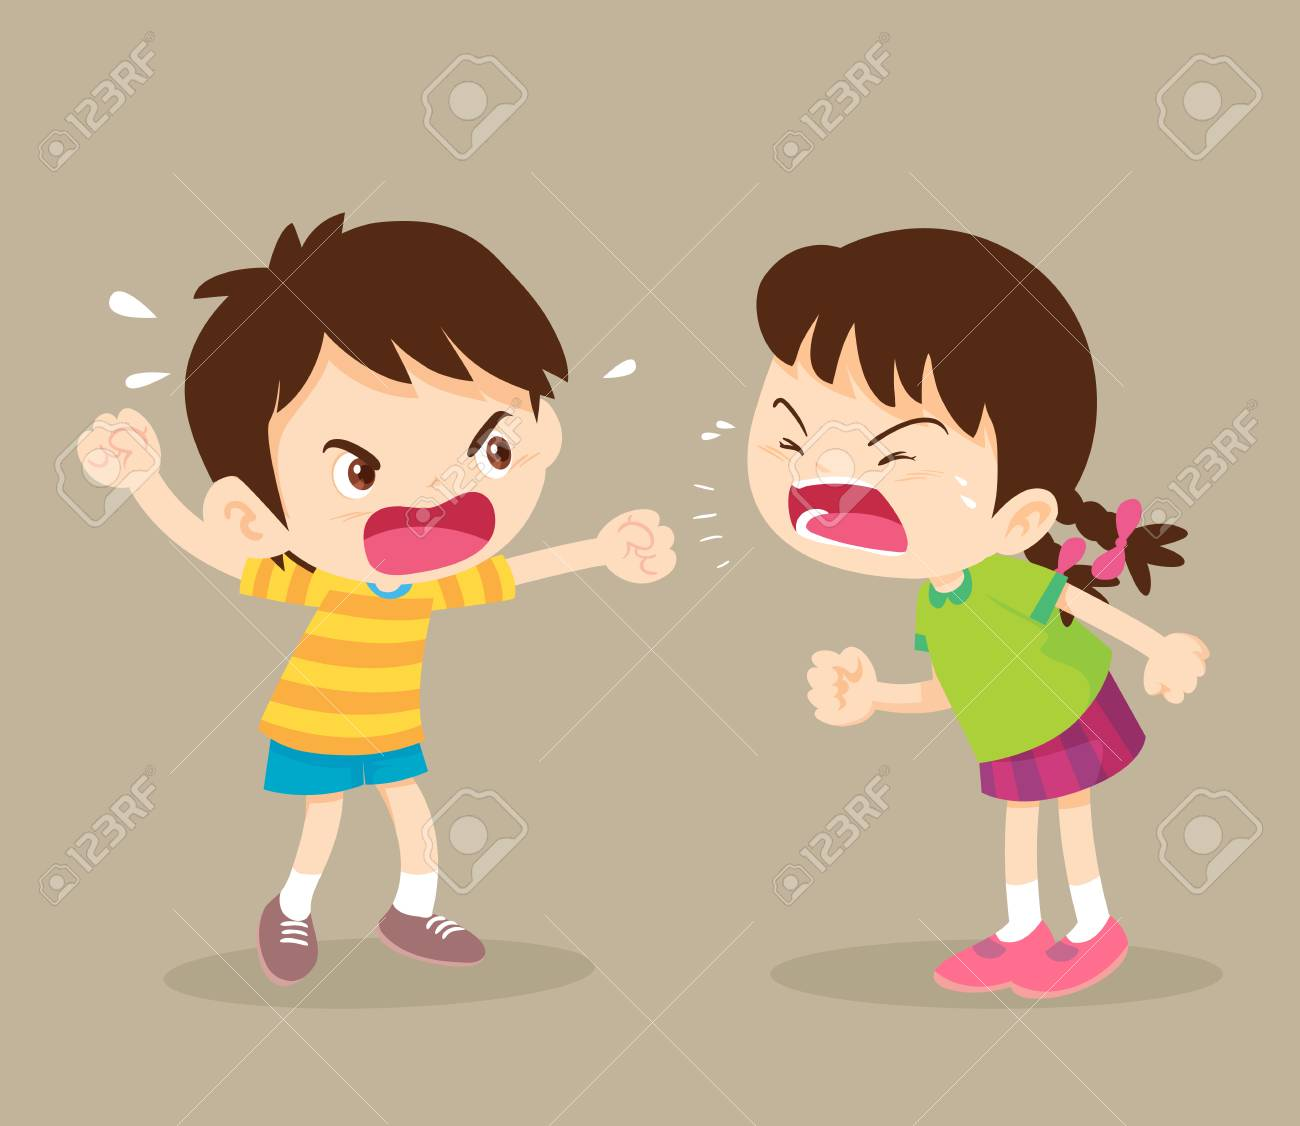 angry child.children shouting to each other.boy and girl arguing. - 118812580